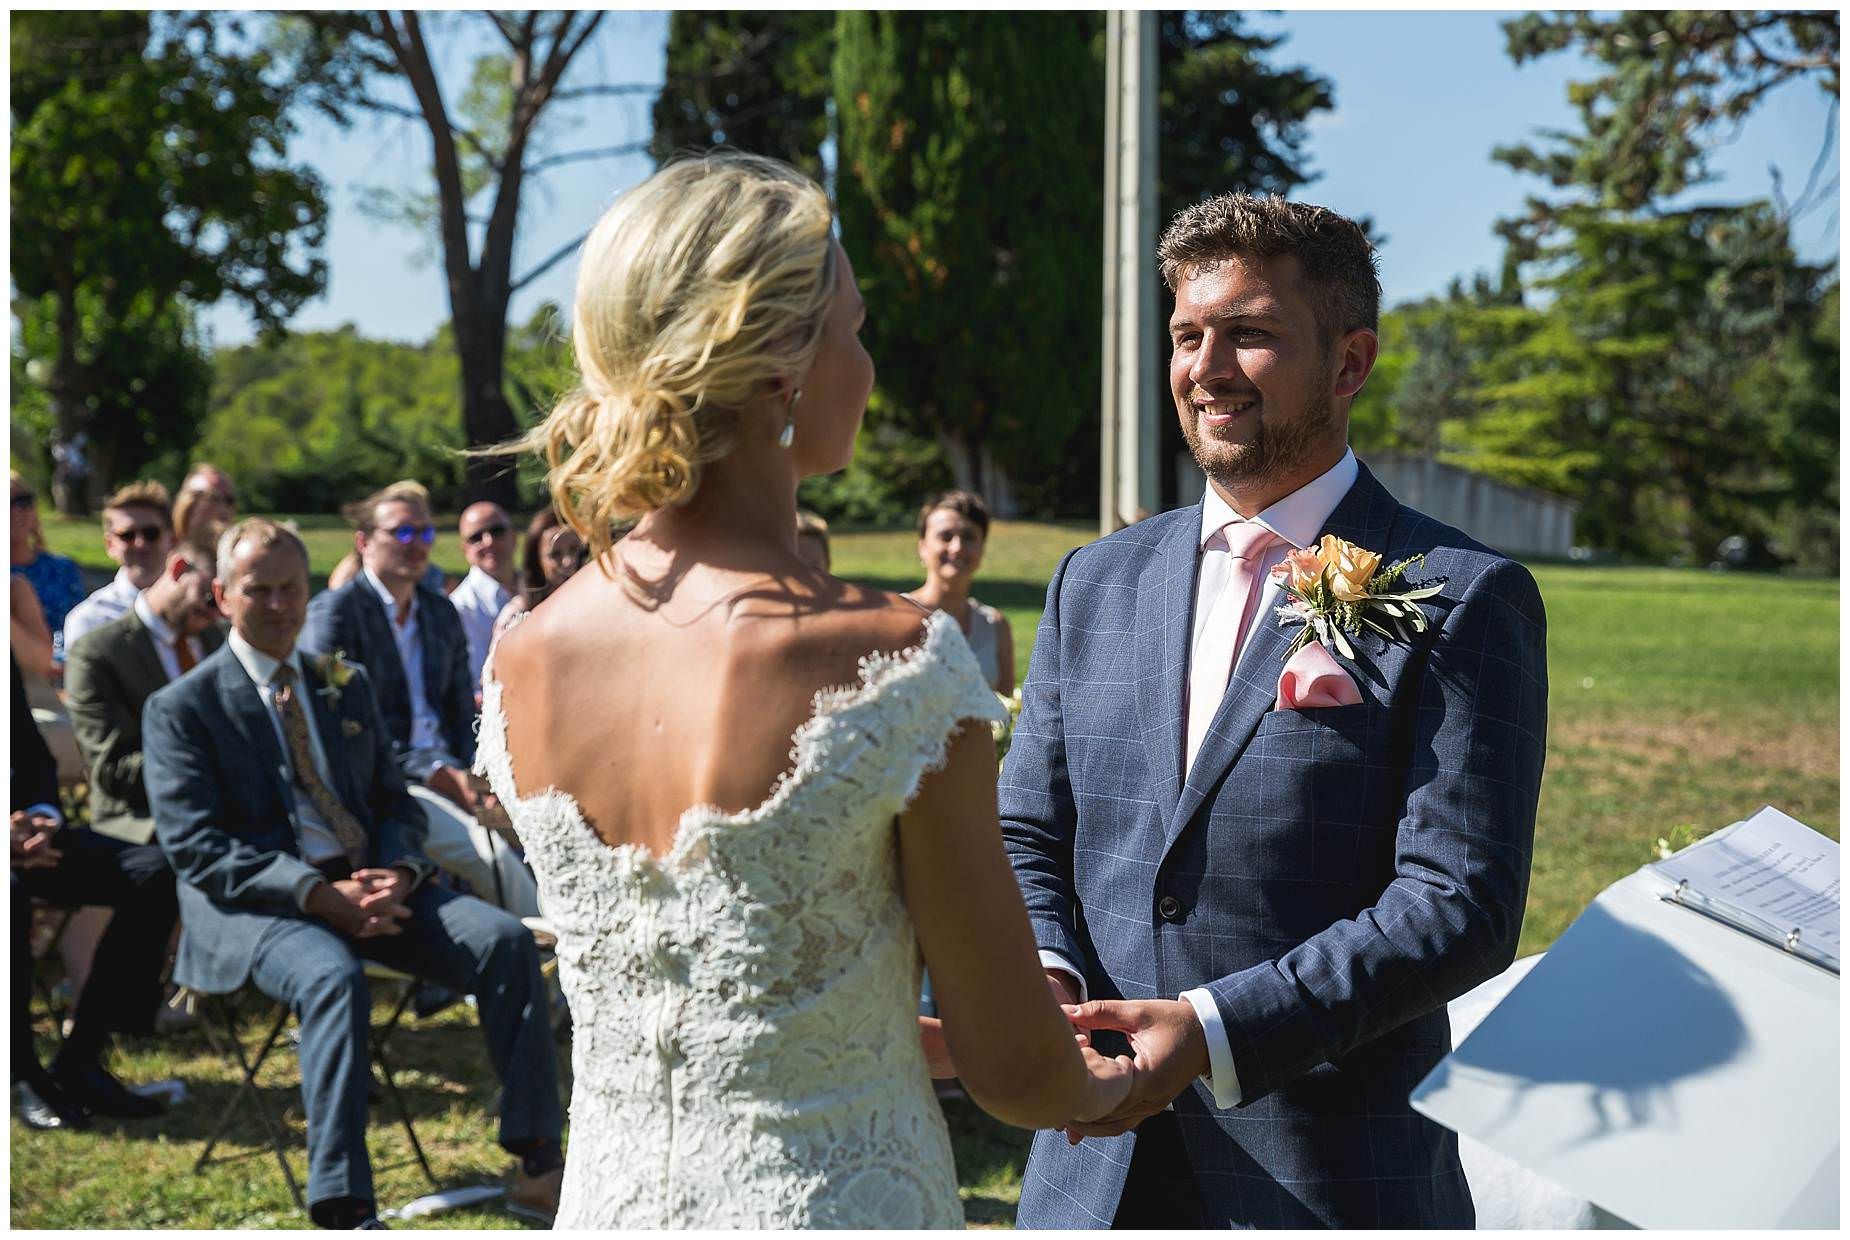 wedding vows at Domaine Saint Germain